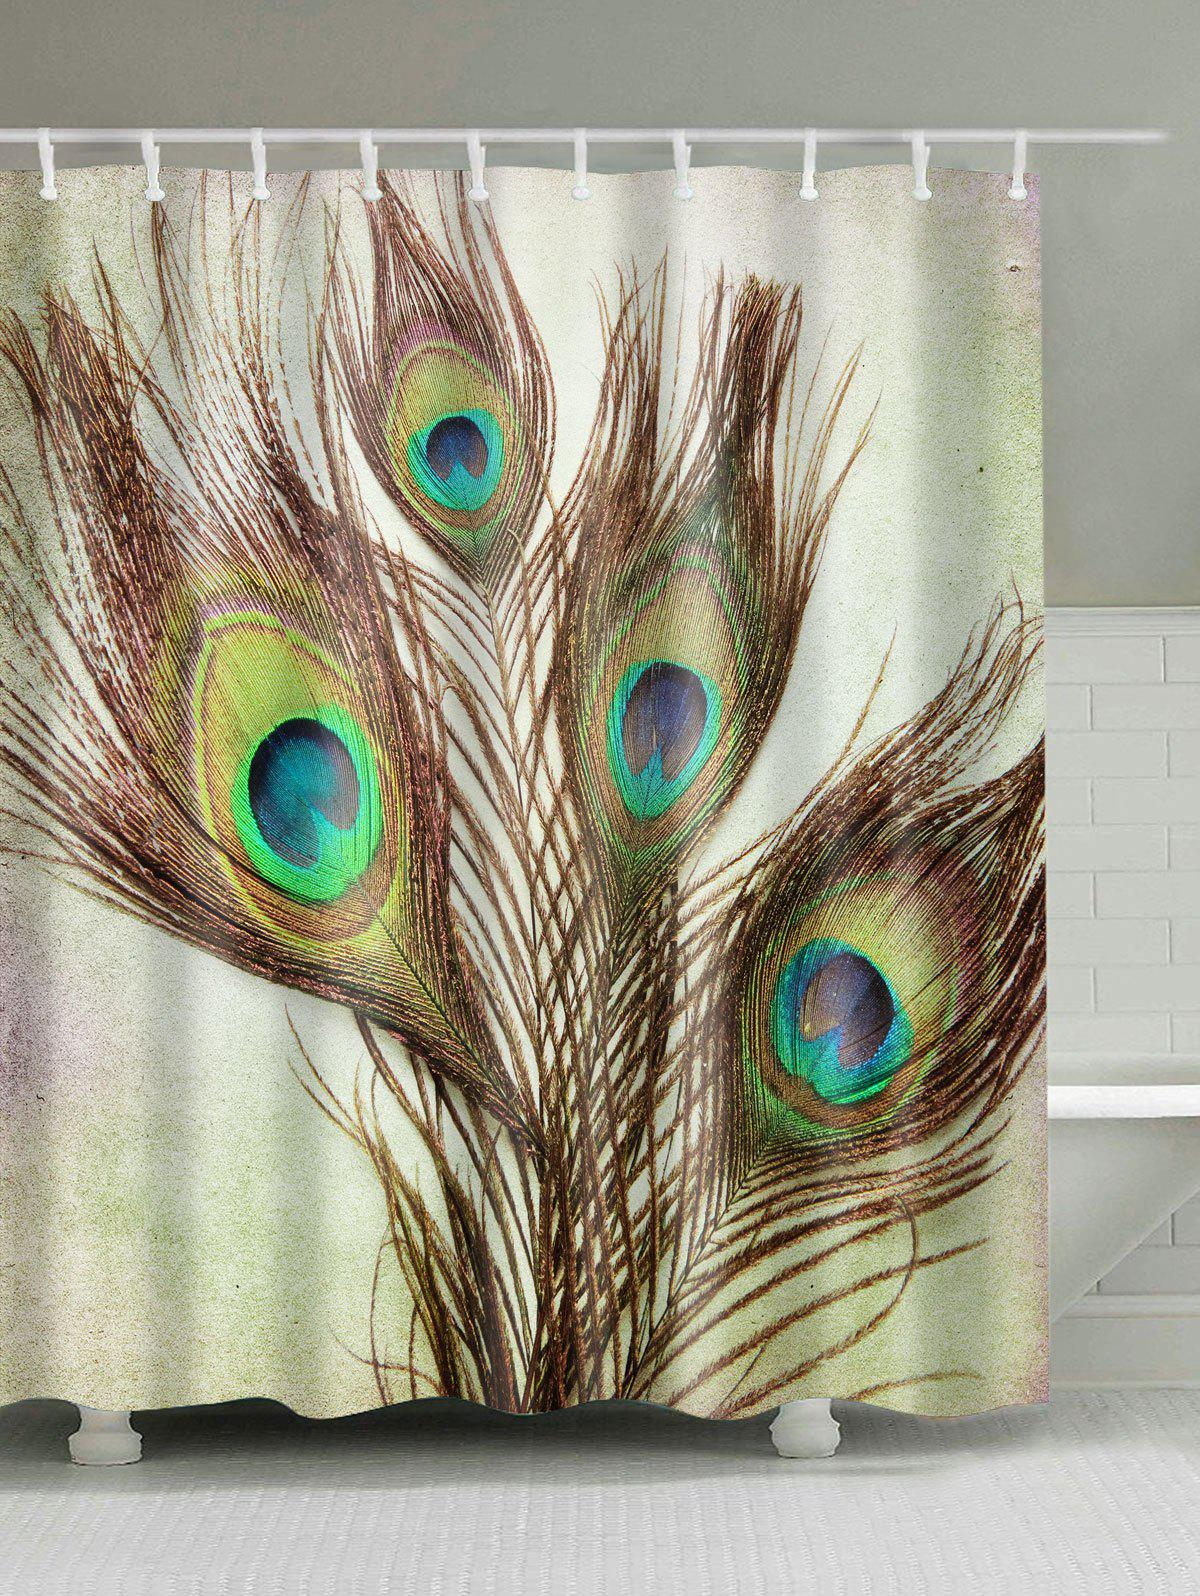 Peacock shower curtain hooks - Peacock Feather Fabric Shower Curtain With Hooks Light Brown W59inch L71inch